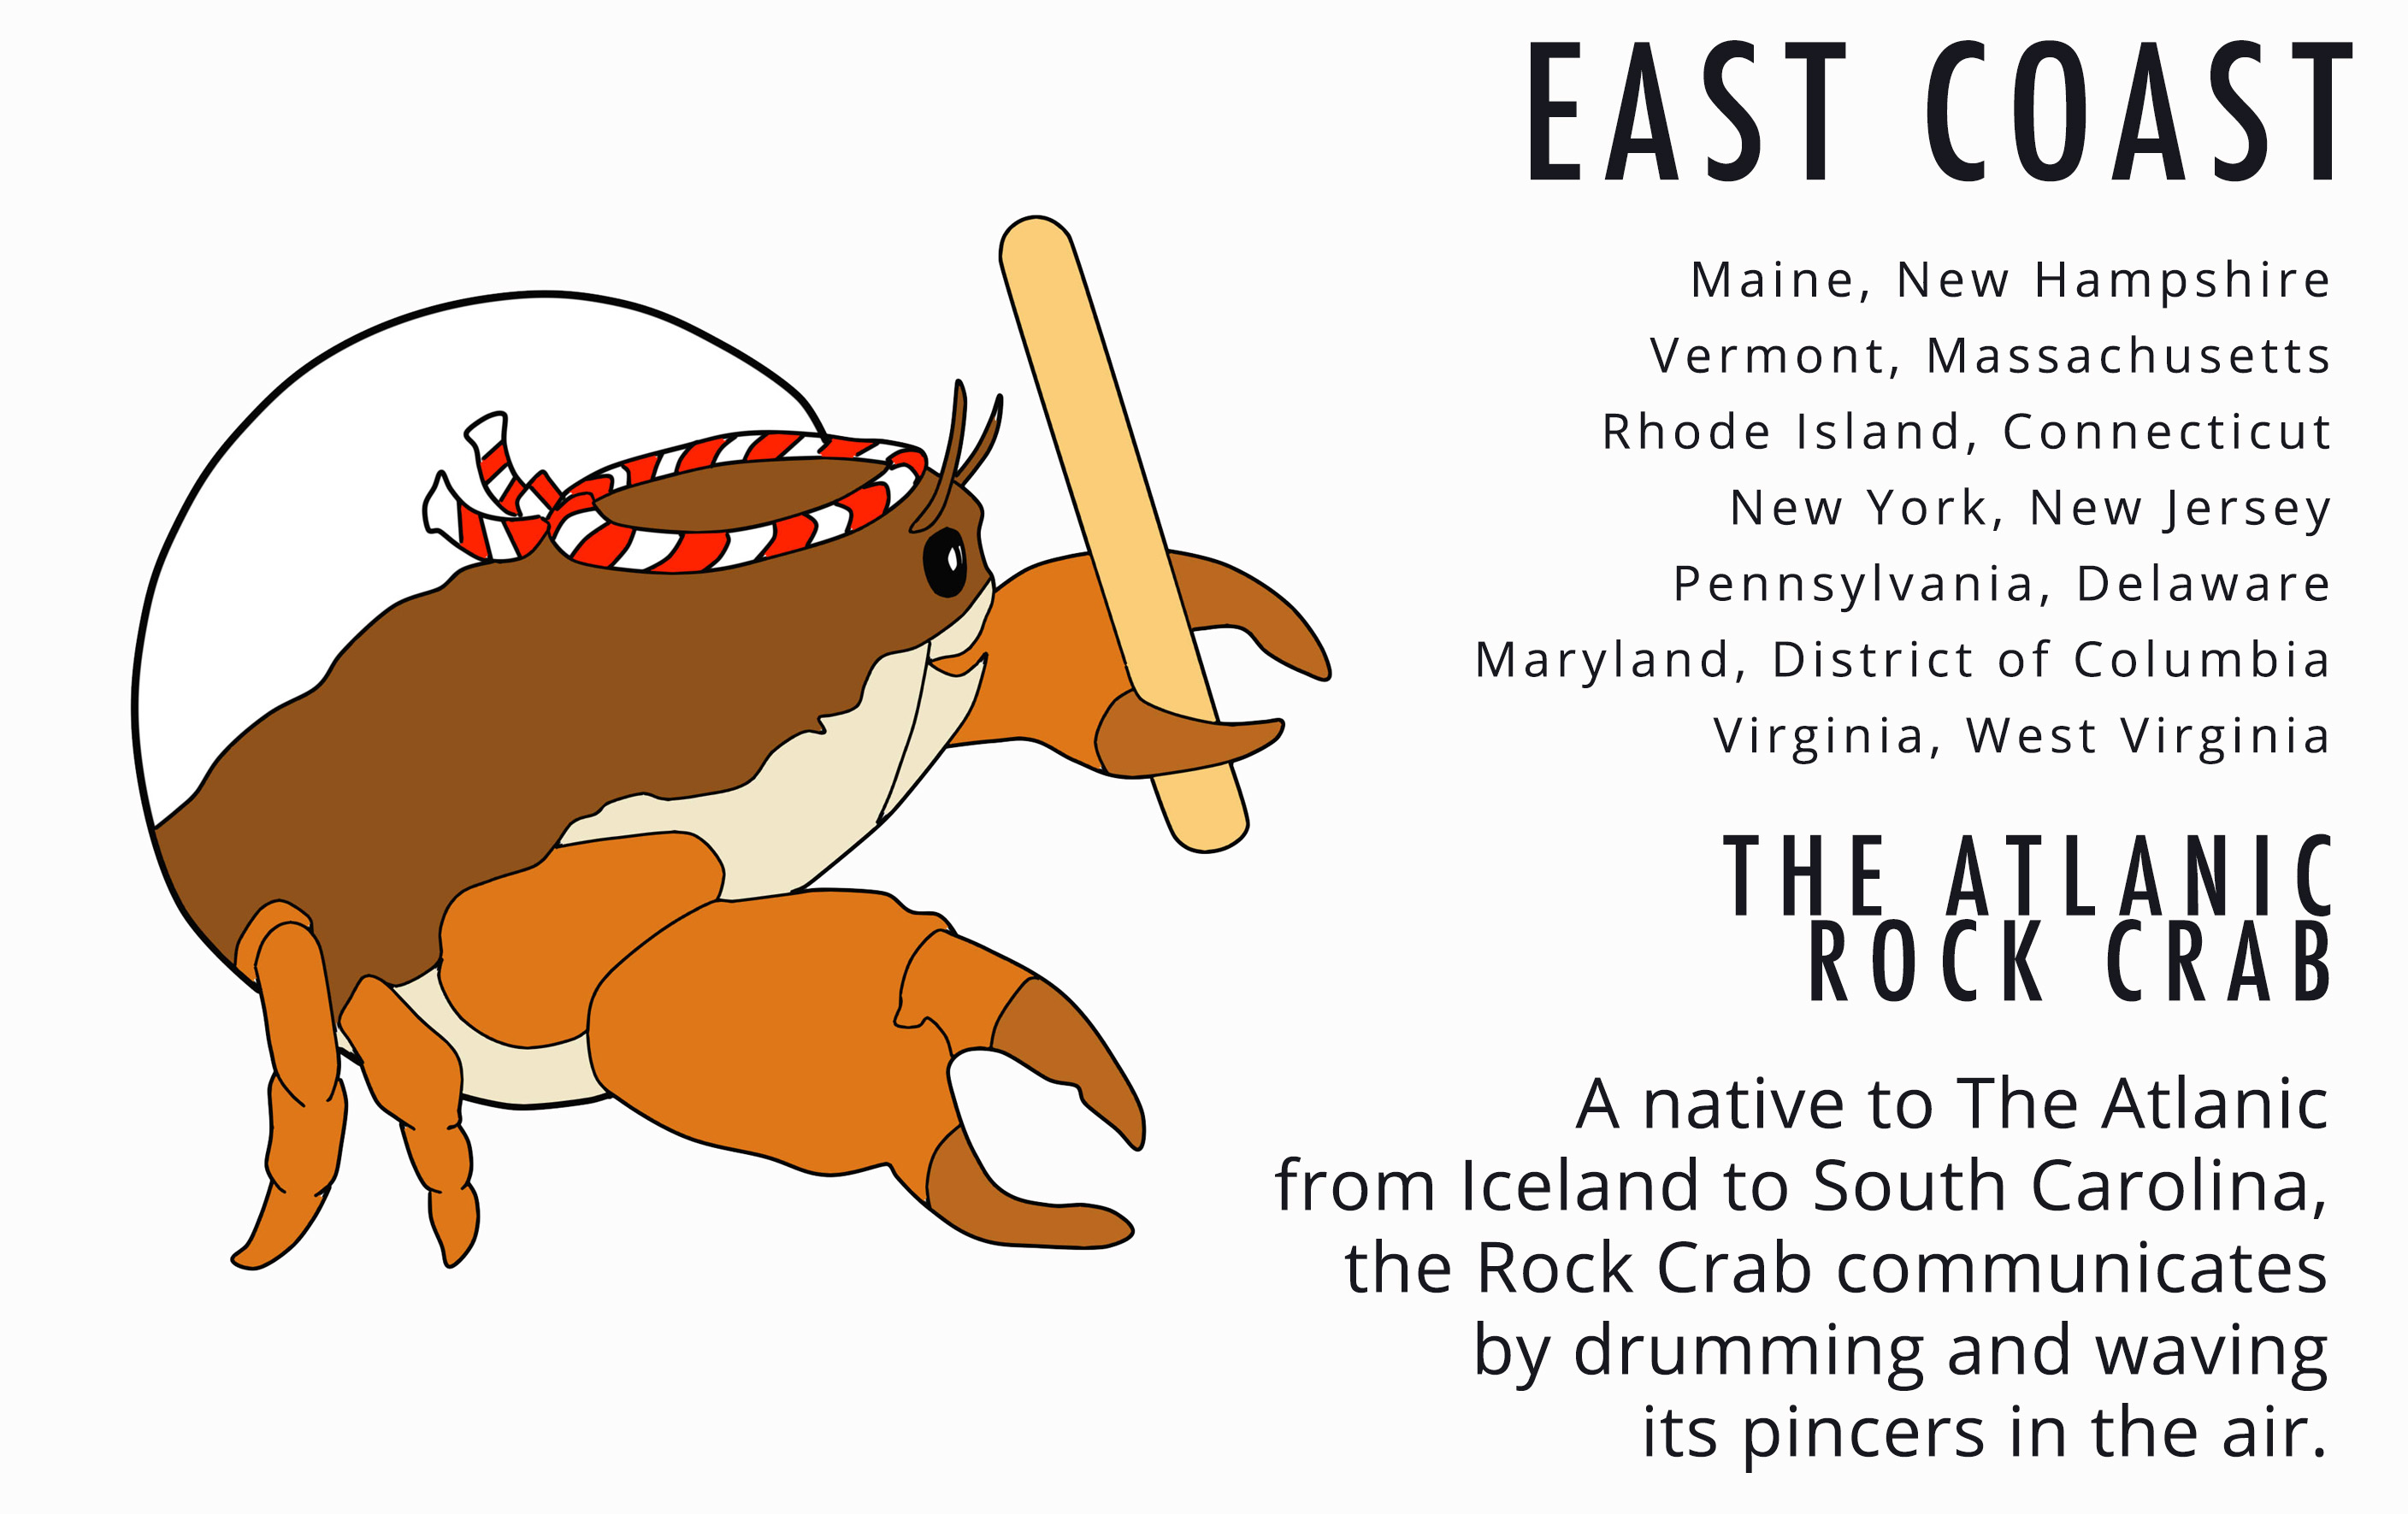 East Coast Rock Crab Card